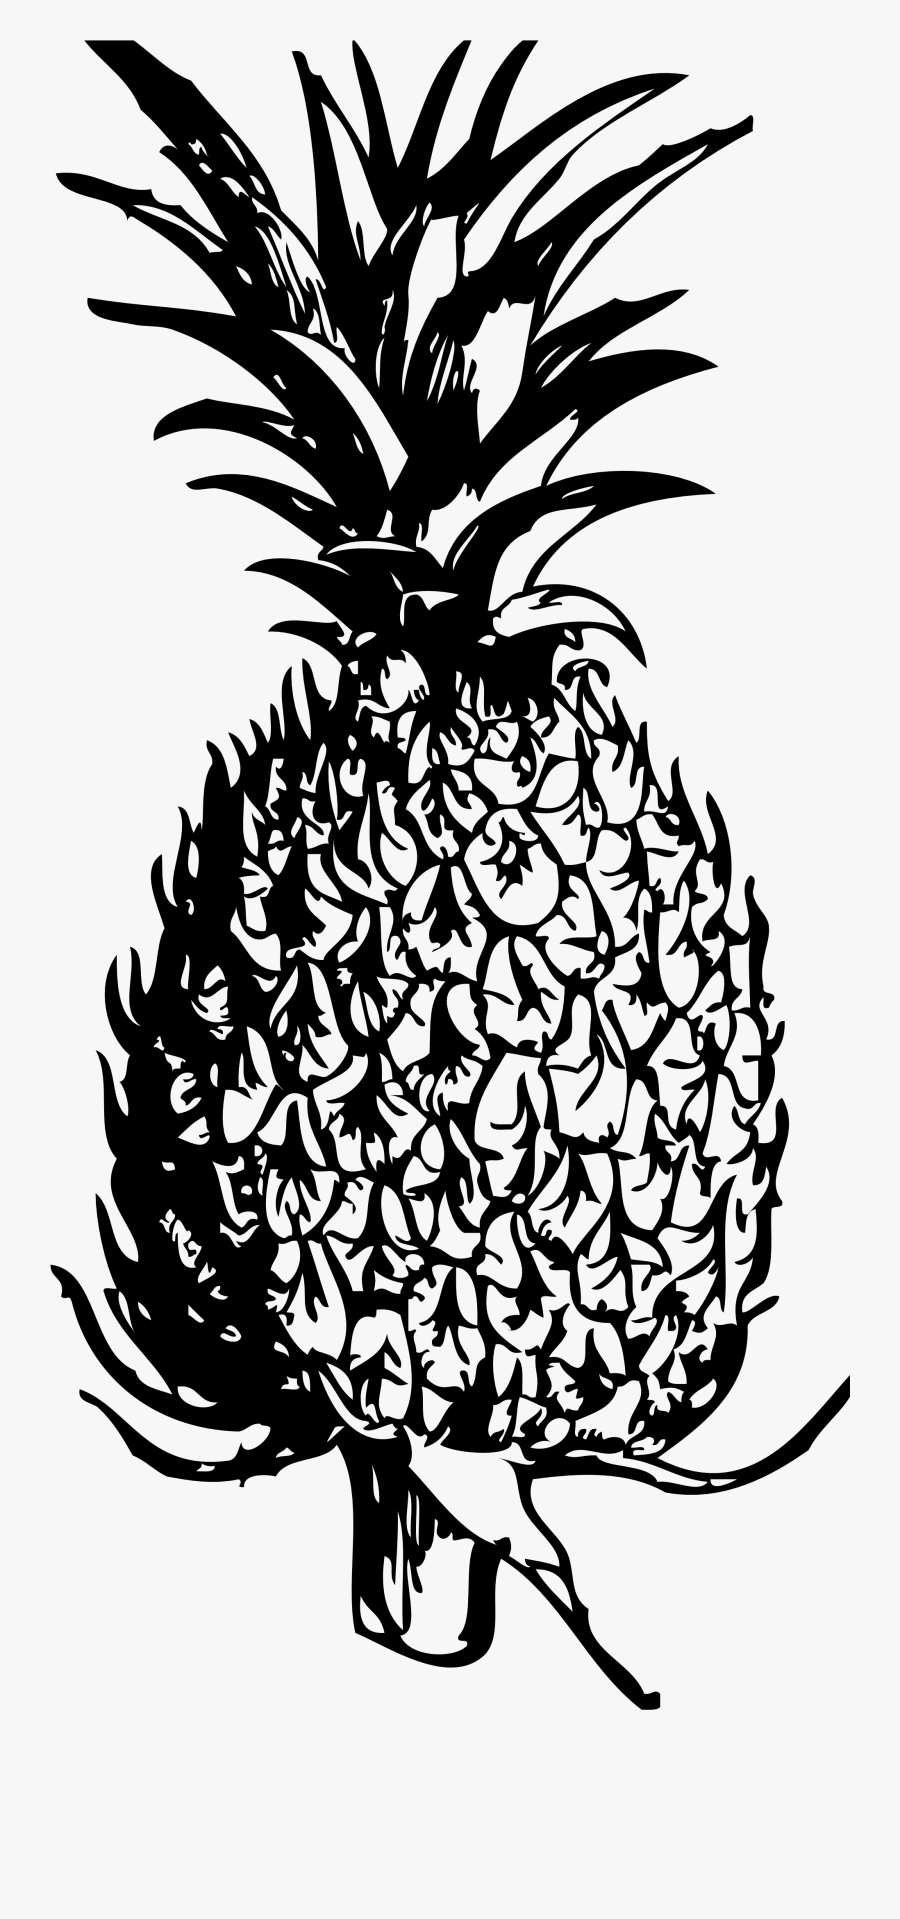 Free Pineapple Black And White Clipart Free Clip Art - Free Pineapple Clipart Black And White, Transparent Clipart